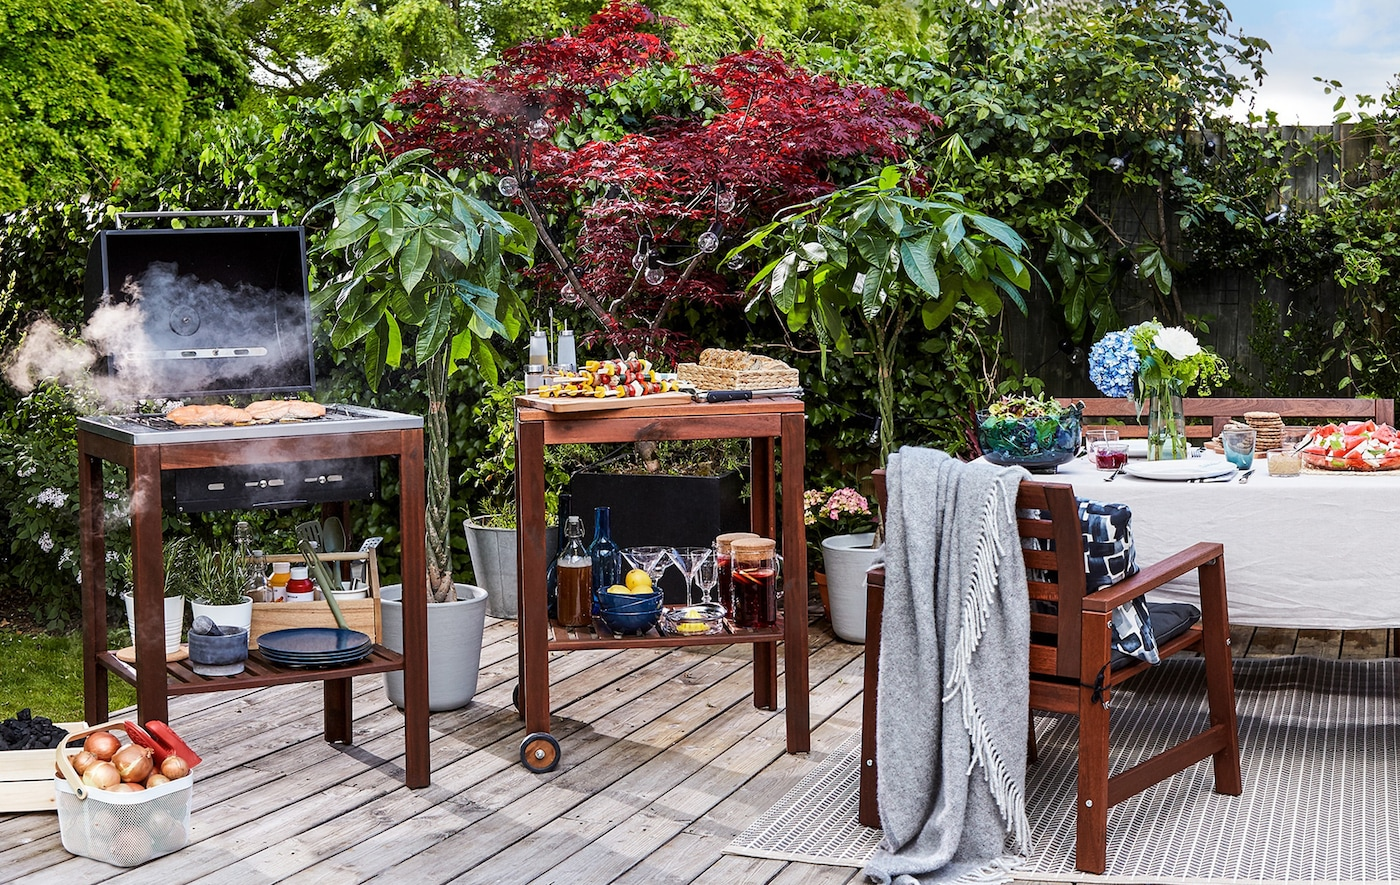 A decked area in a garden with dining table and chairs, food trolley and barbeque.